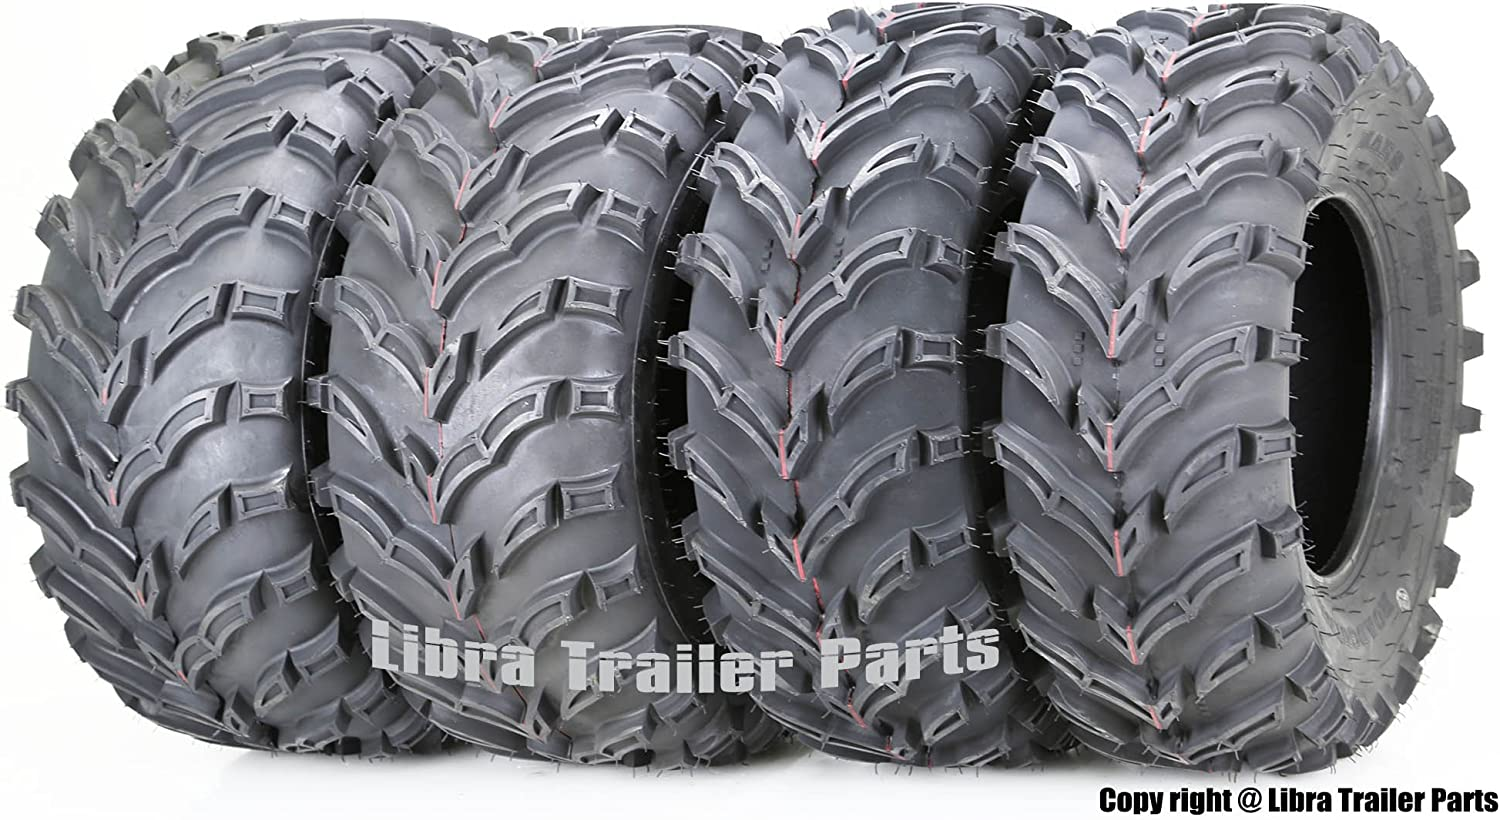 26x11-12 Rear Tire Set 2 6 Ply 4 New MASSFX MS ATV Tires 26x9-12 Front 2